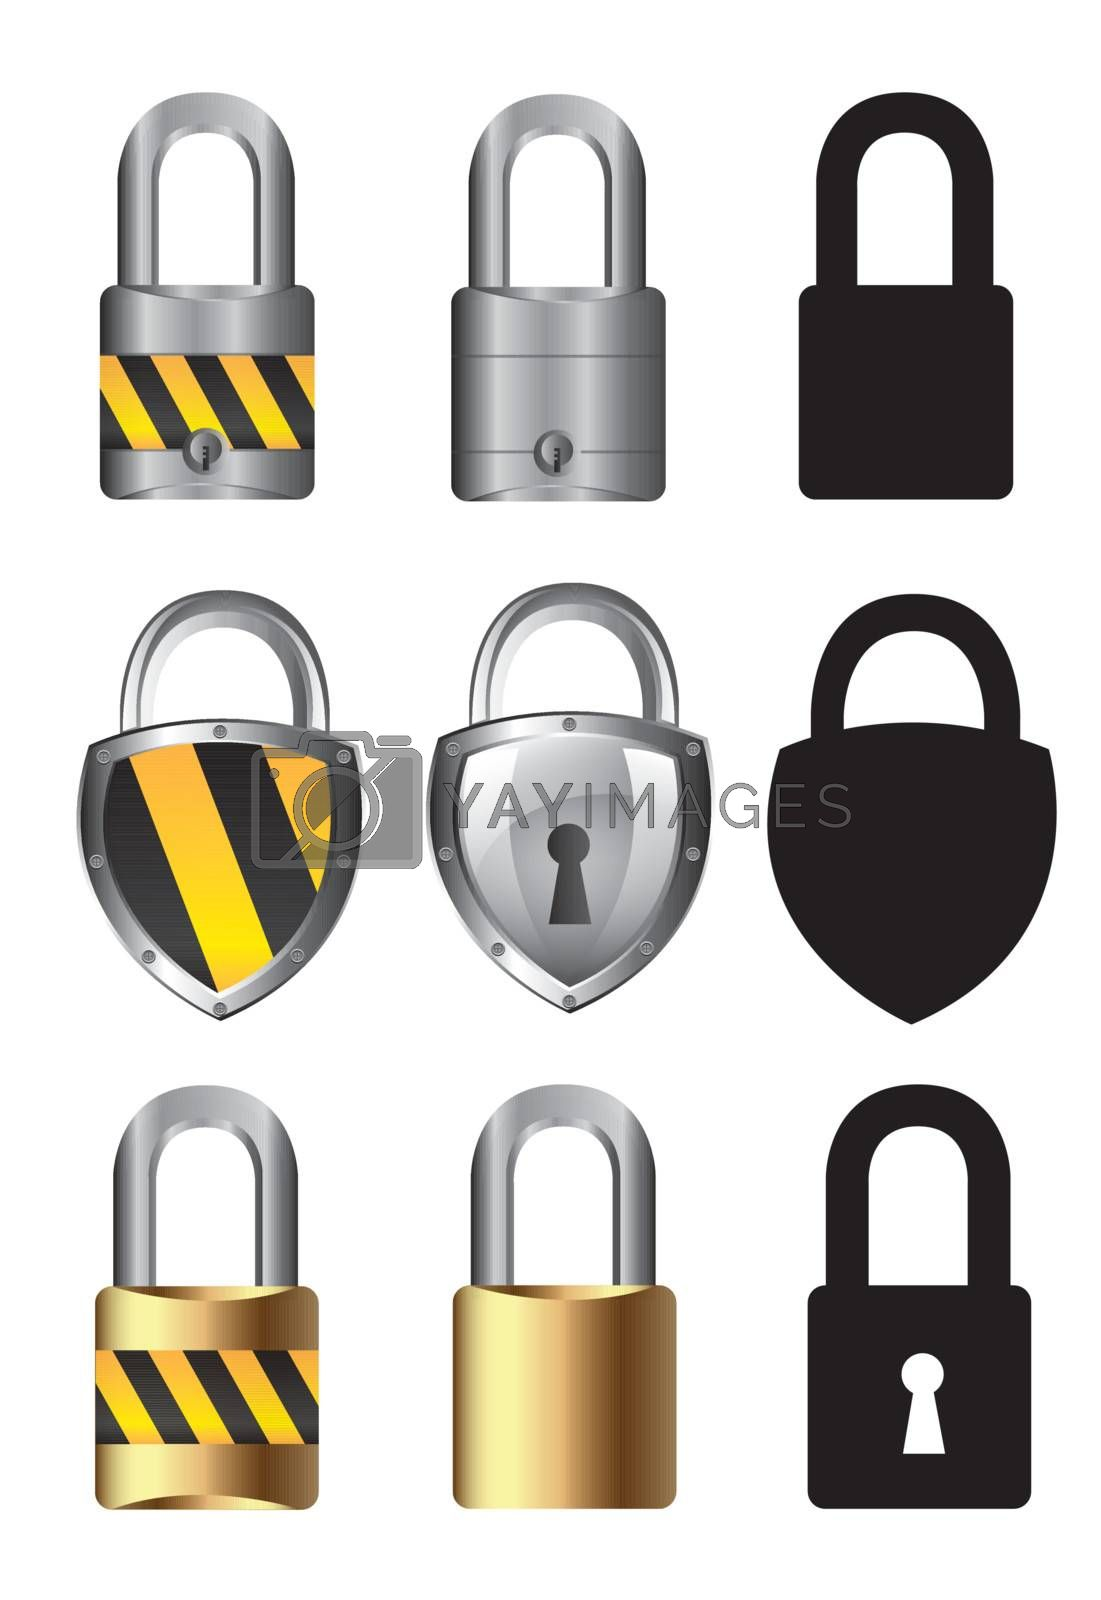 collections of locks over white background vector illustration